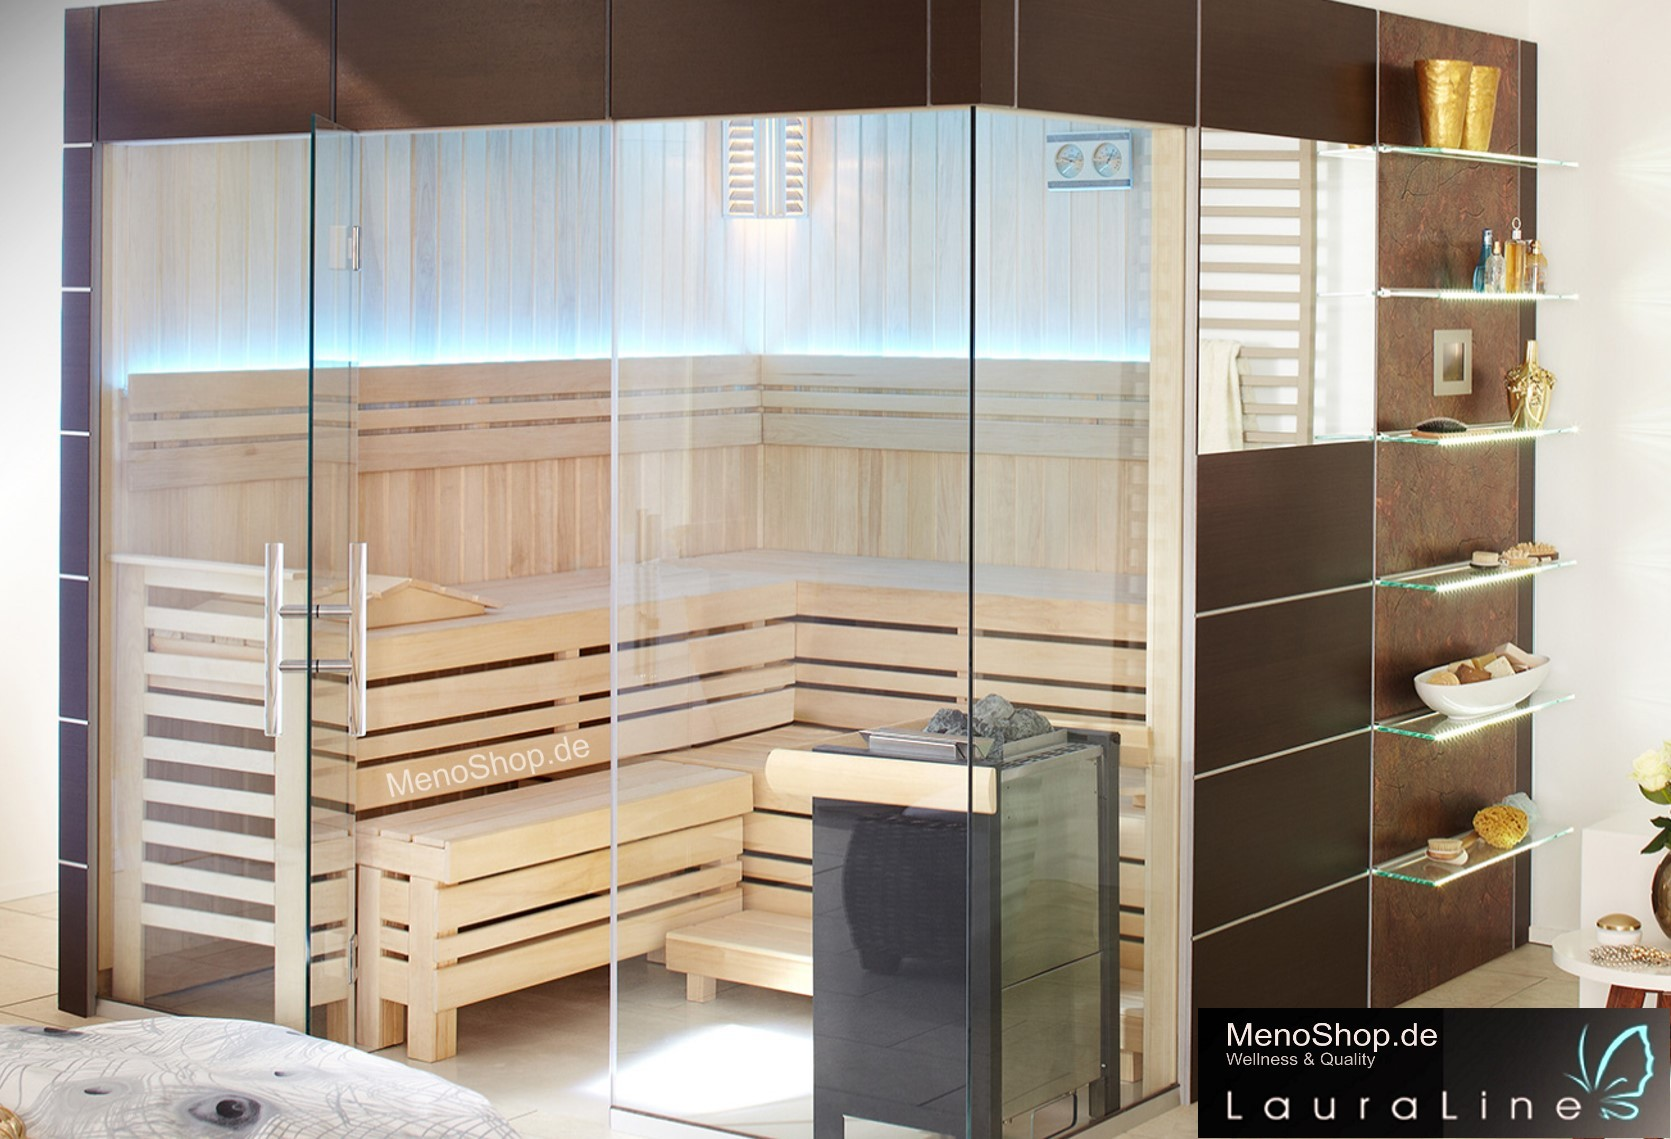 Design_Sauna_LauraLine4